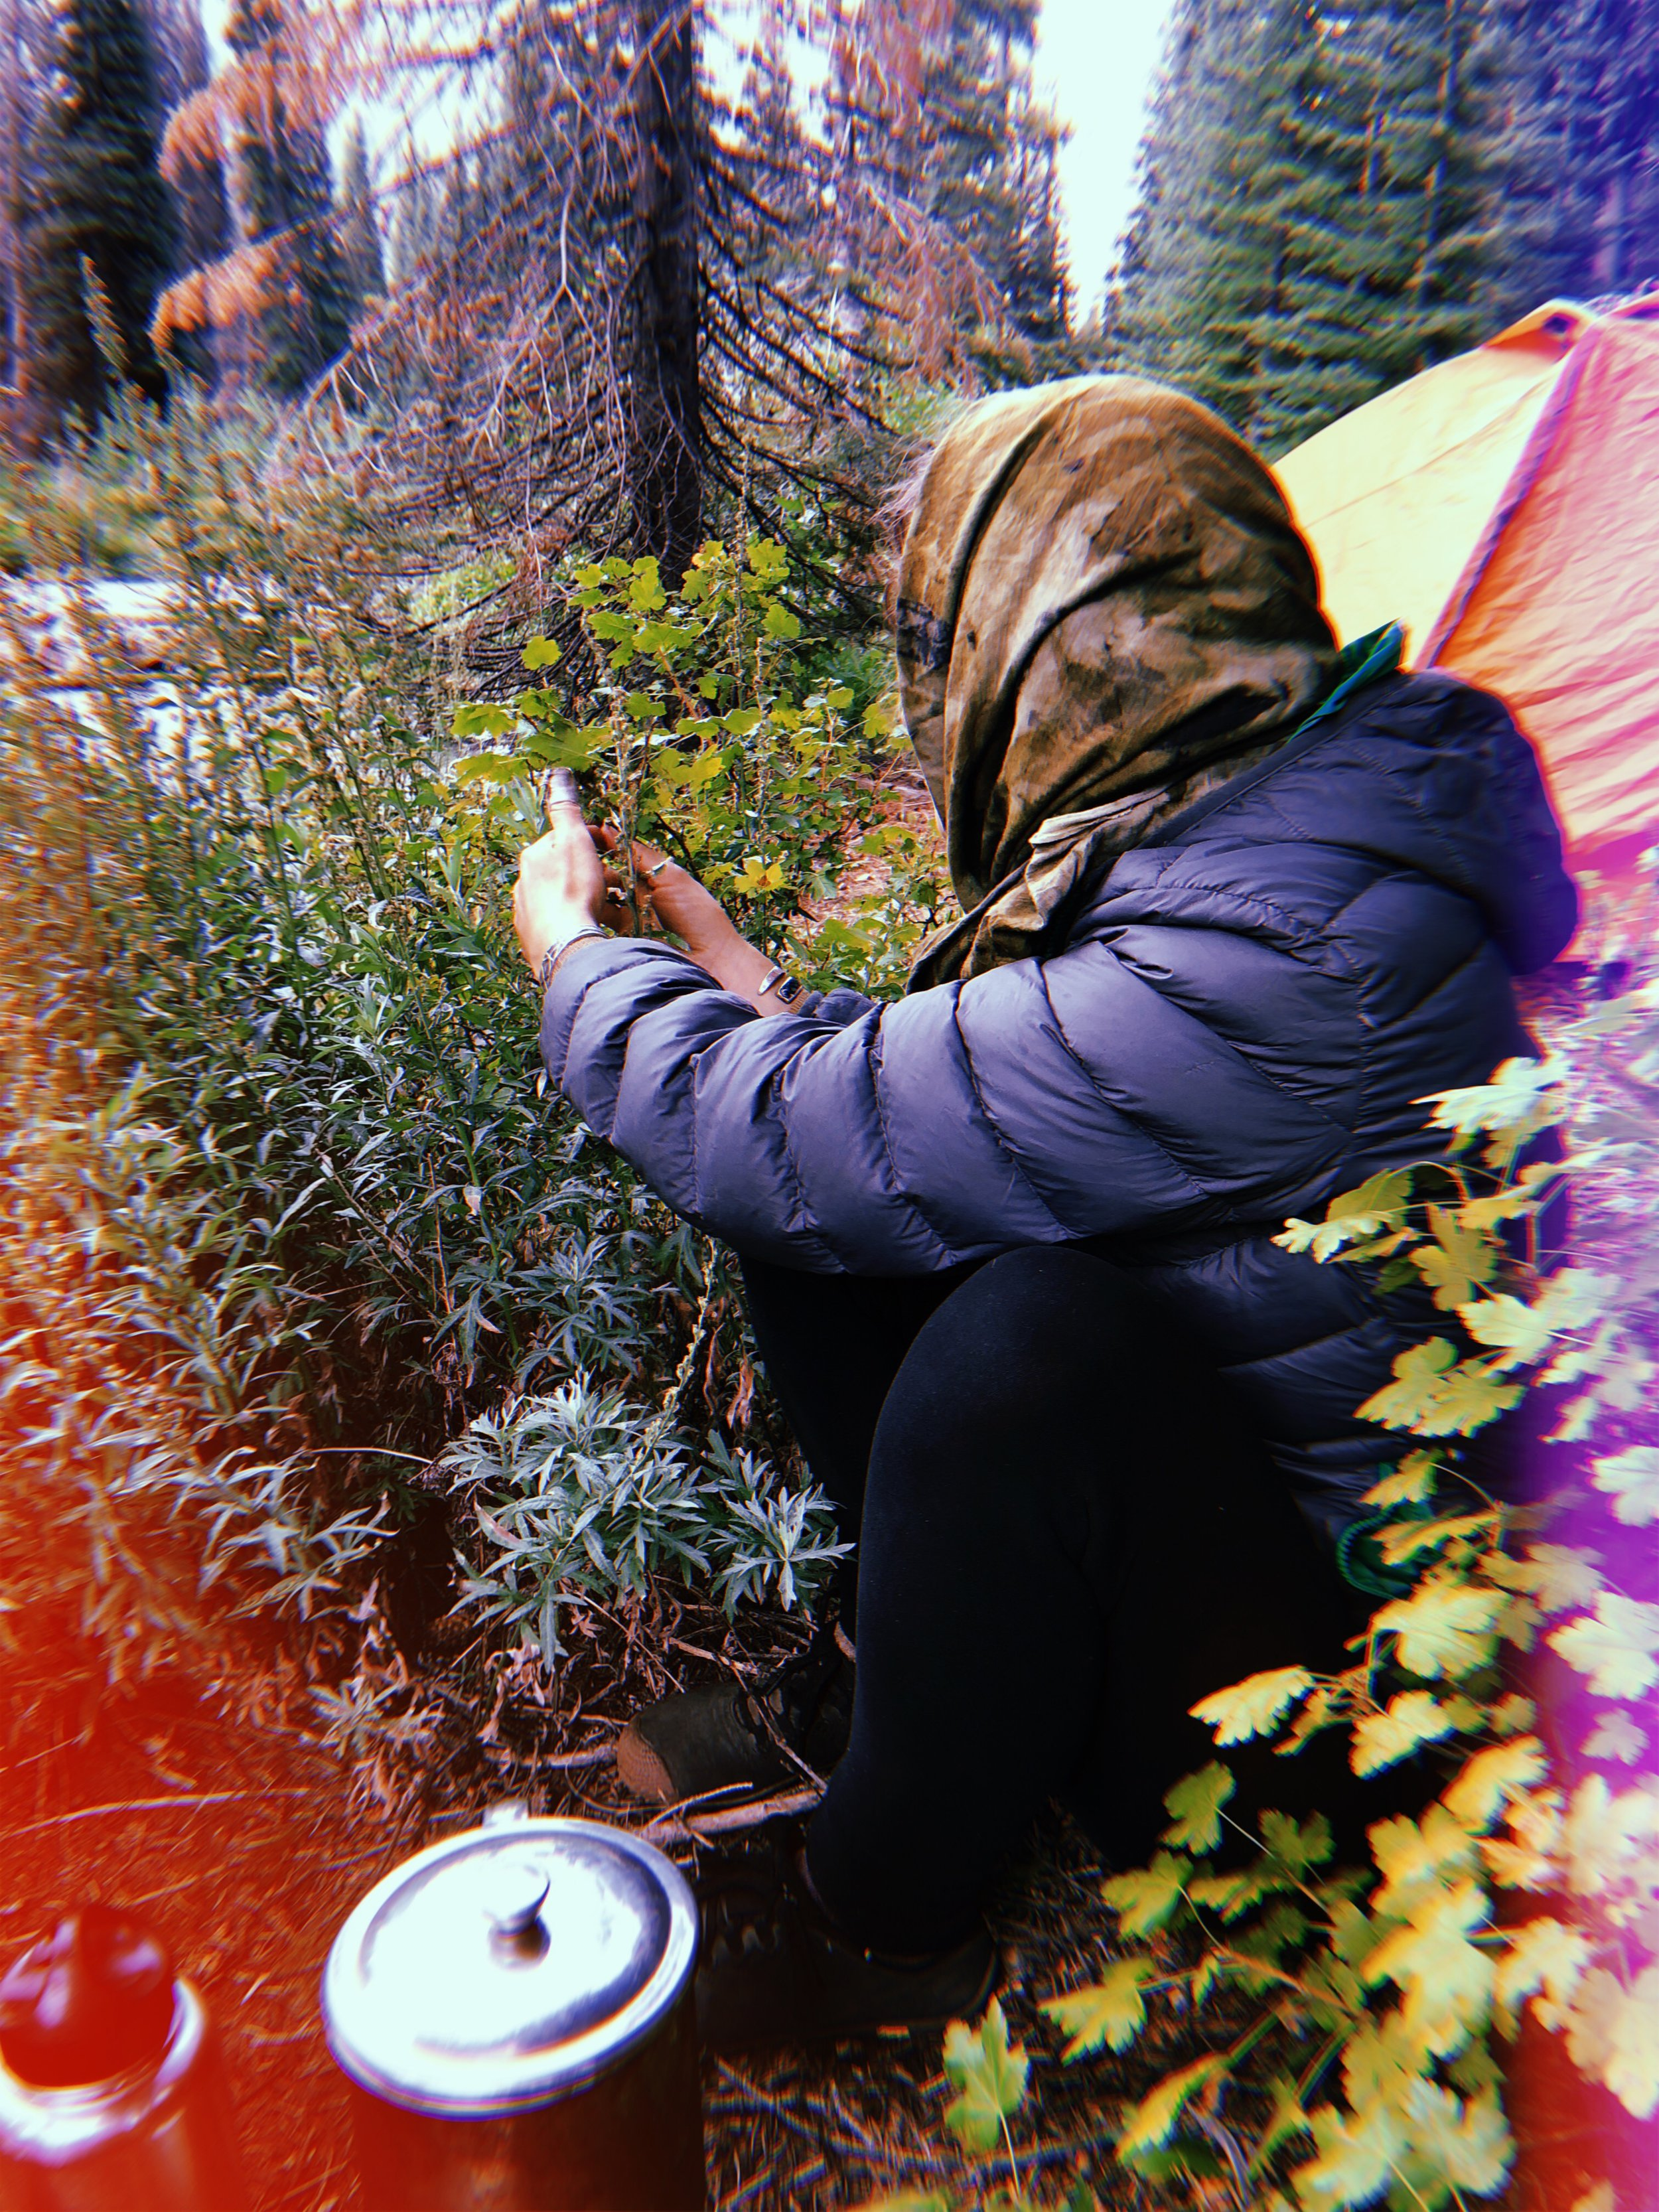 Erin with Mugwort at our first campsite.